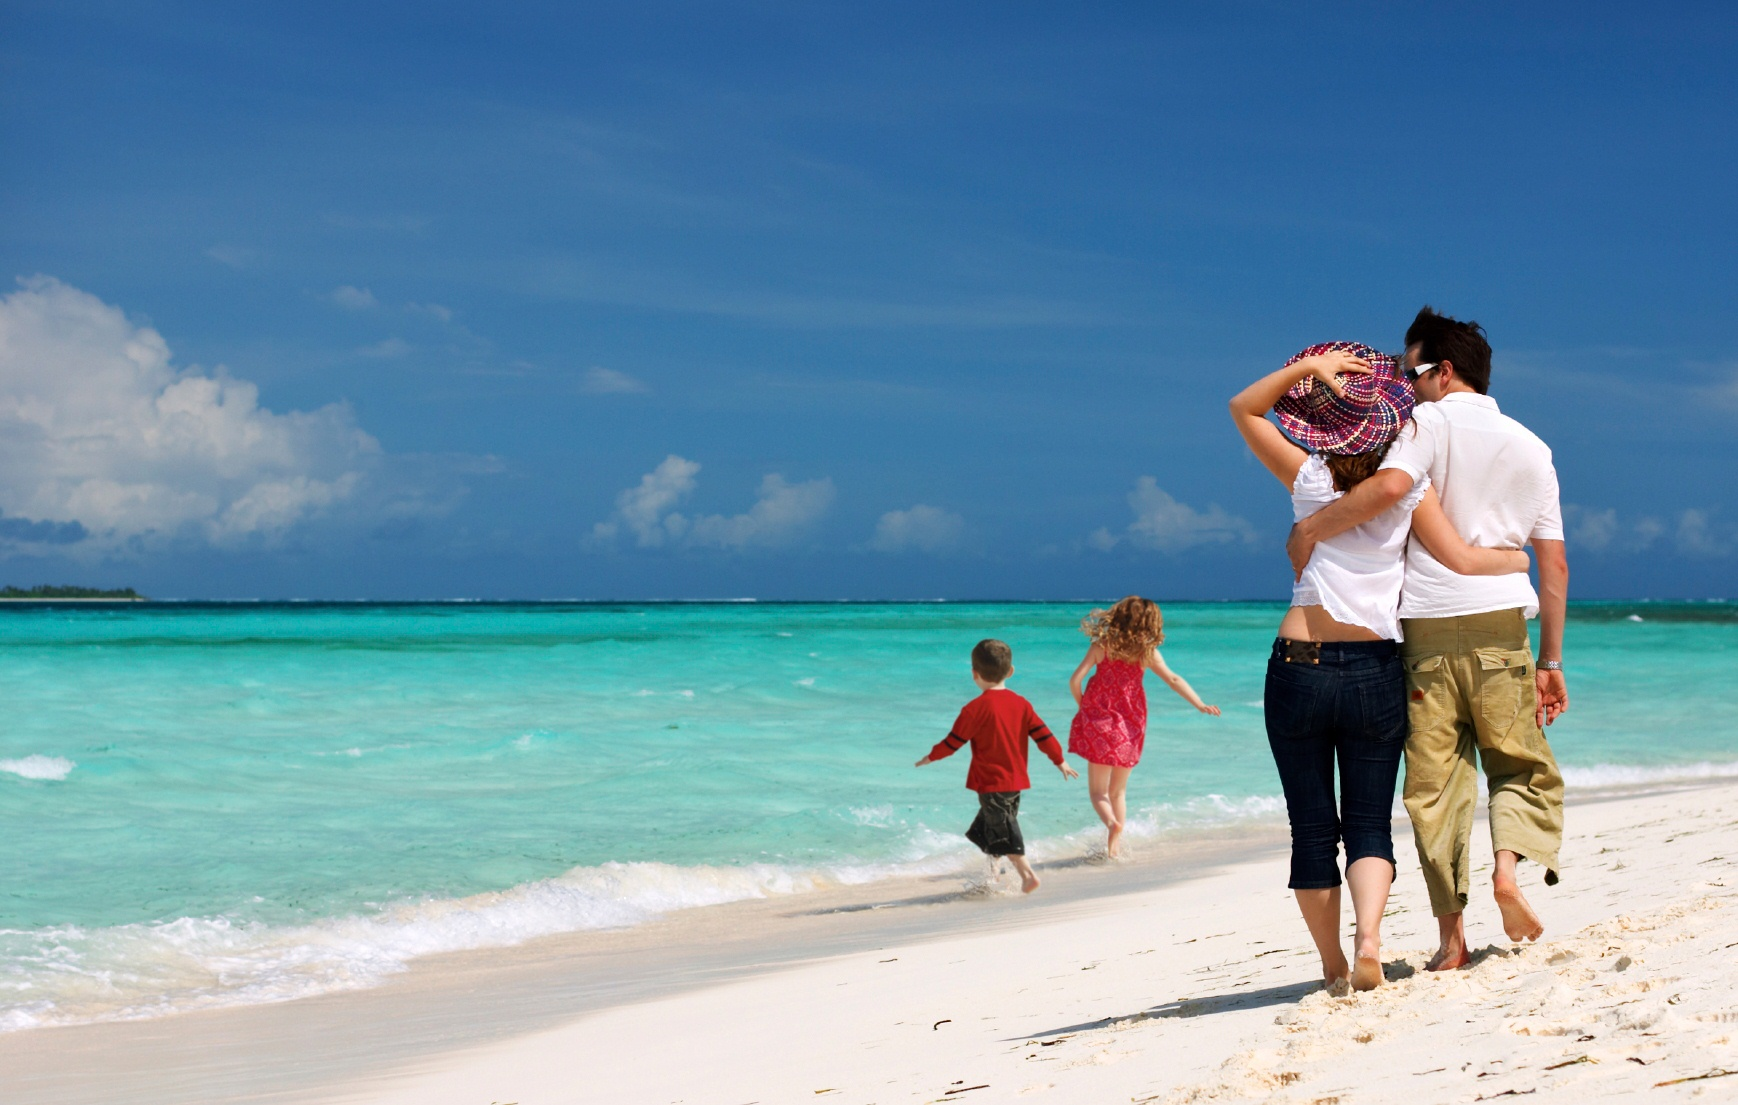 Enjoy your holiday with Family